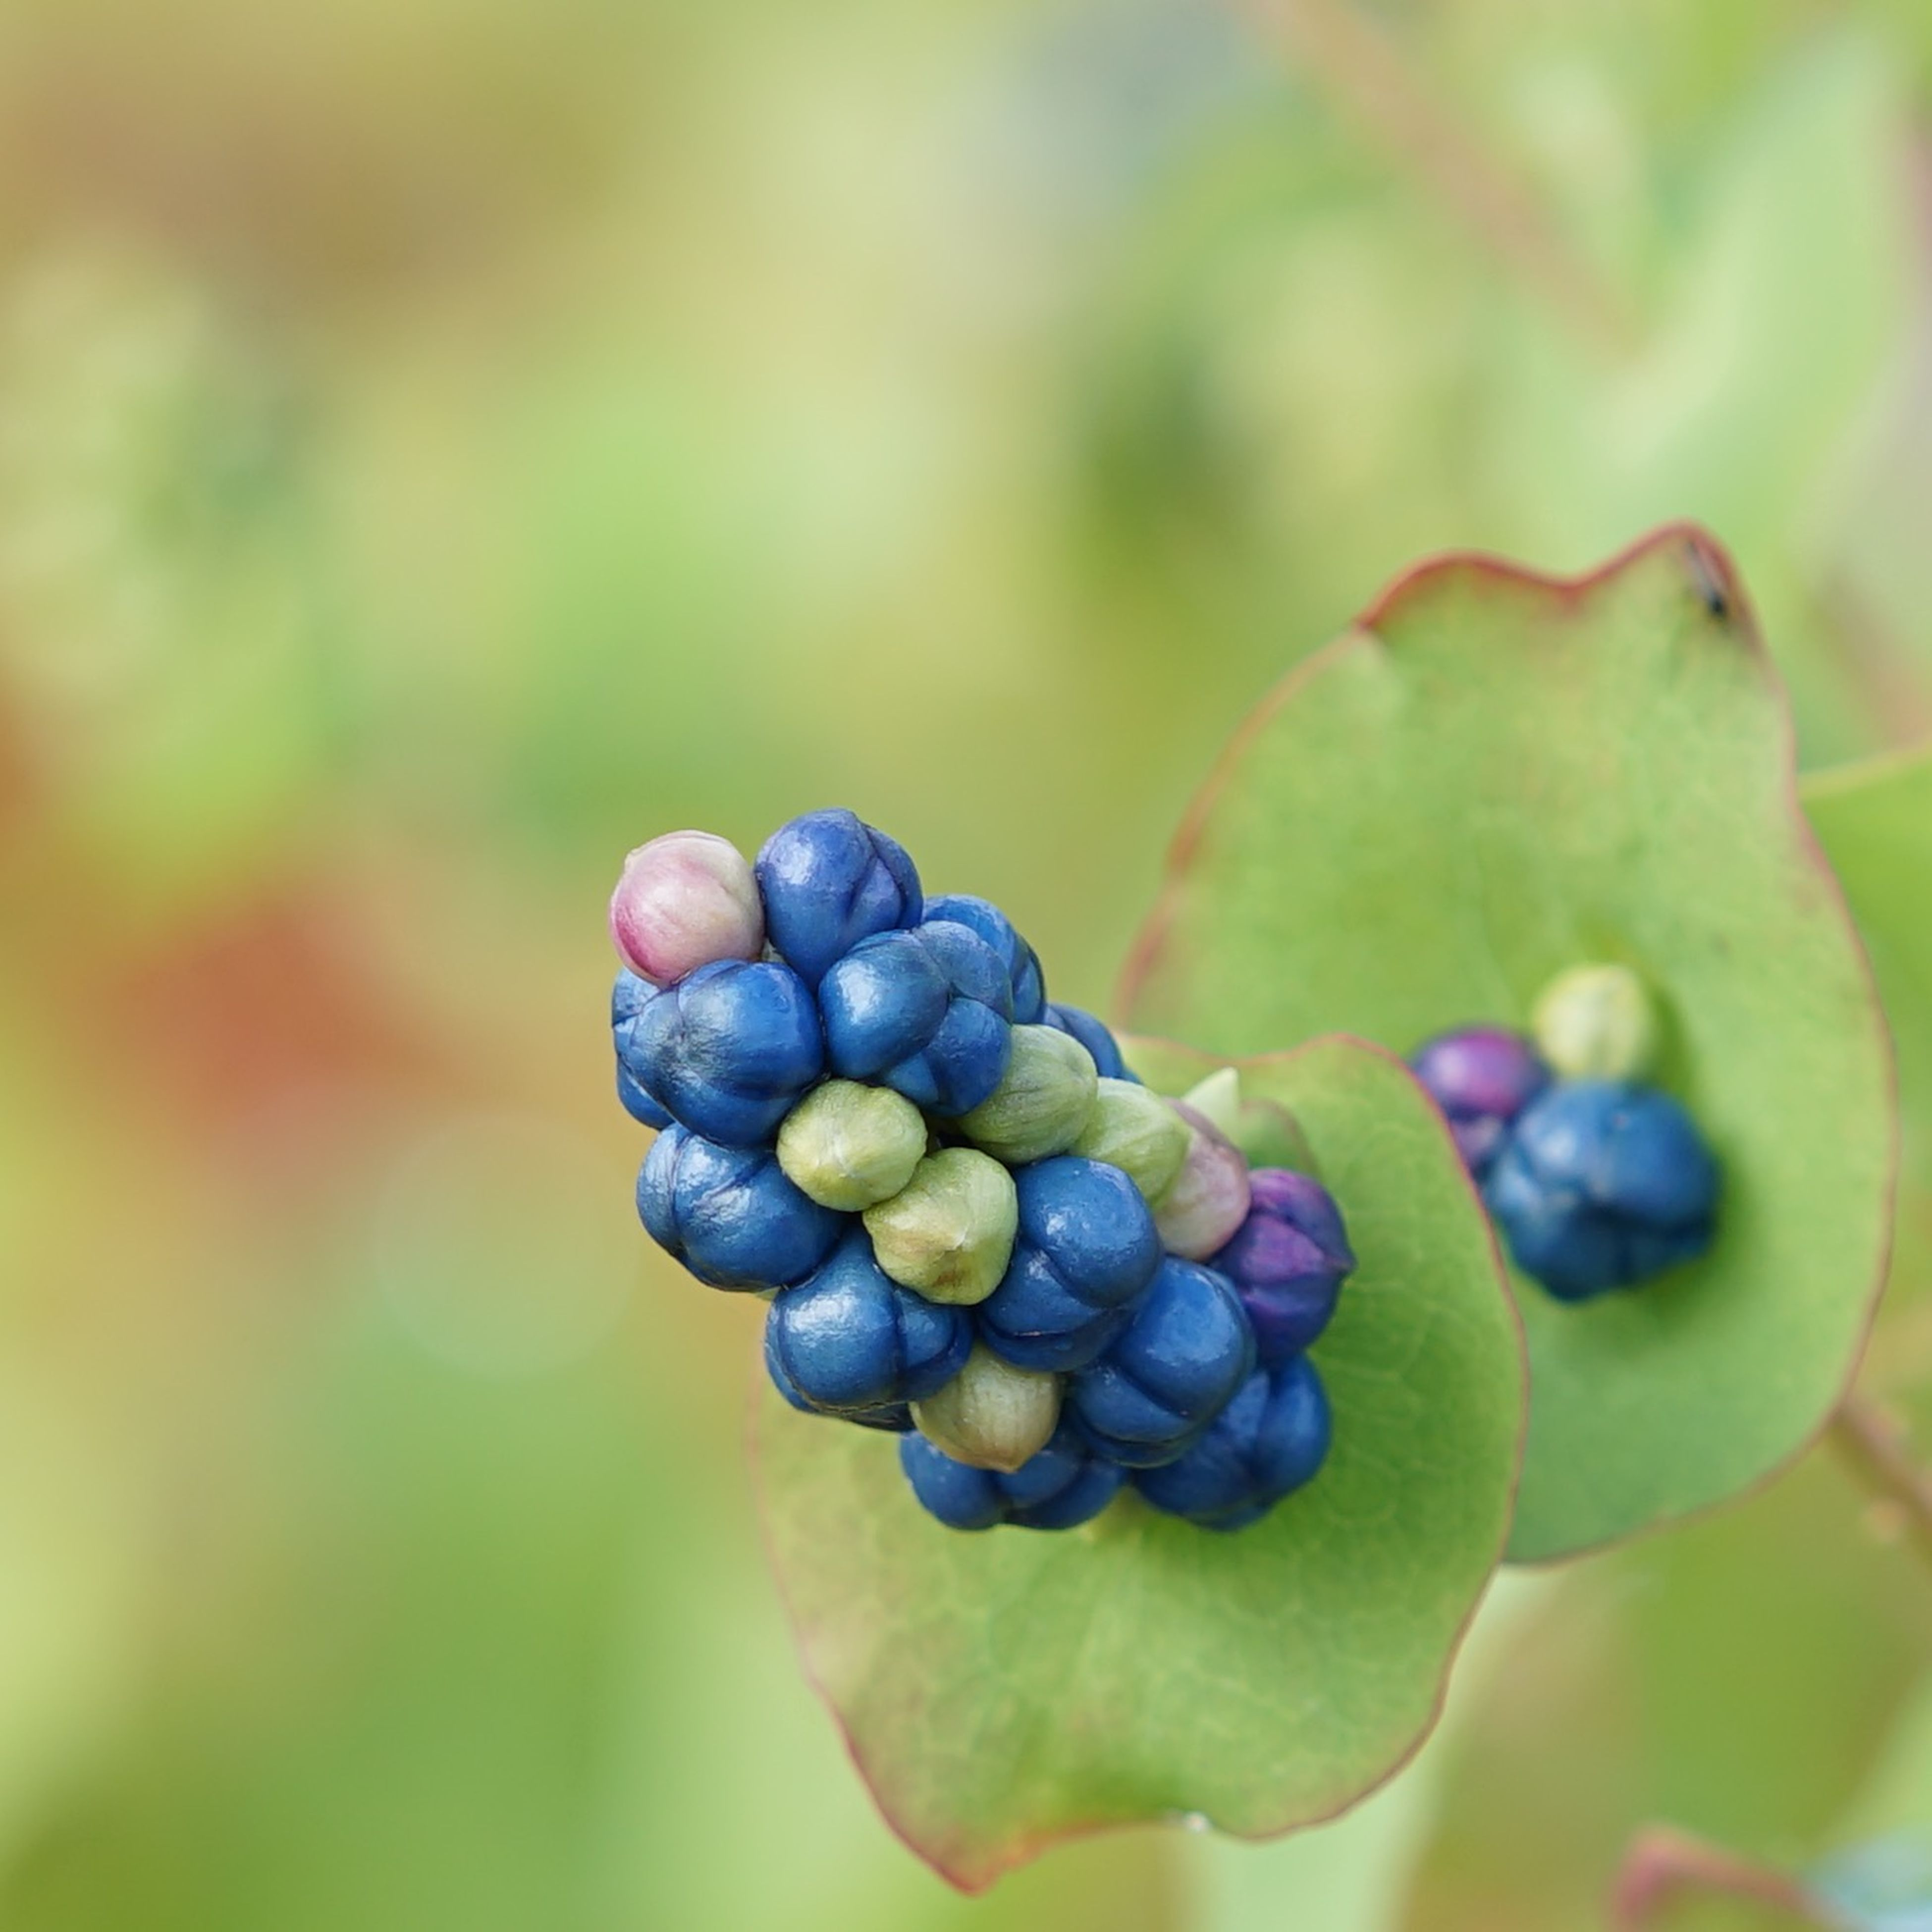 food and drink, freshness, fruit, food, healthy eating, close-up, focus on foreground, growth, grape, selective focus, blue, bunch, green color, ripe, nature, purple, no people, organic, berry fruit, abundance